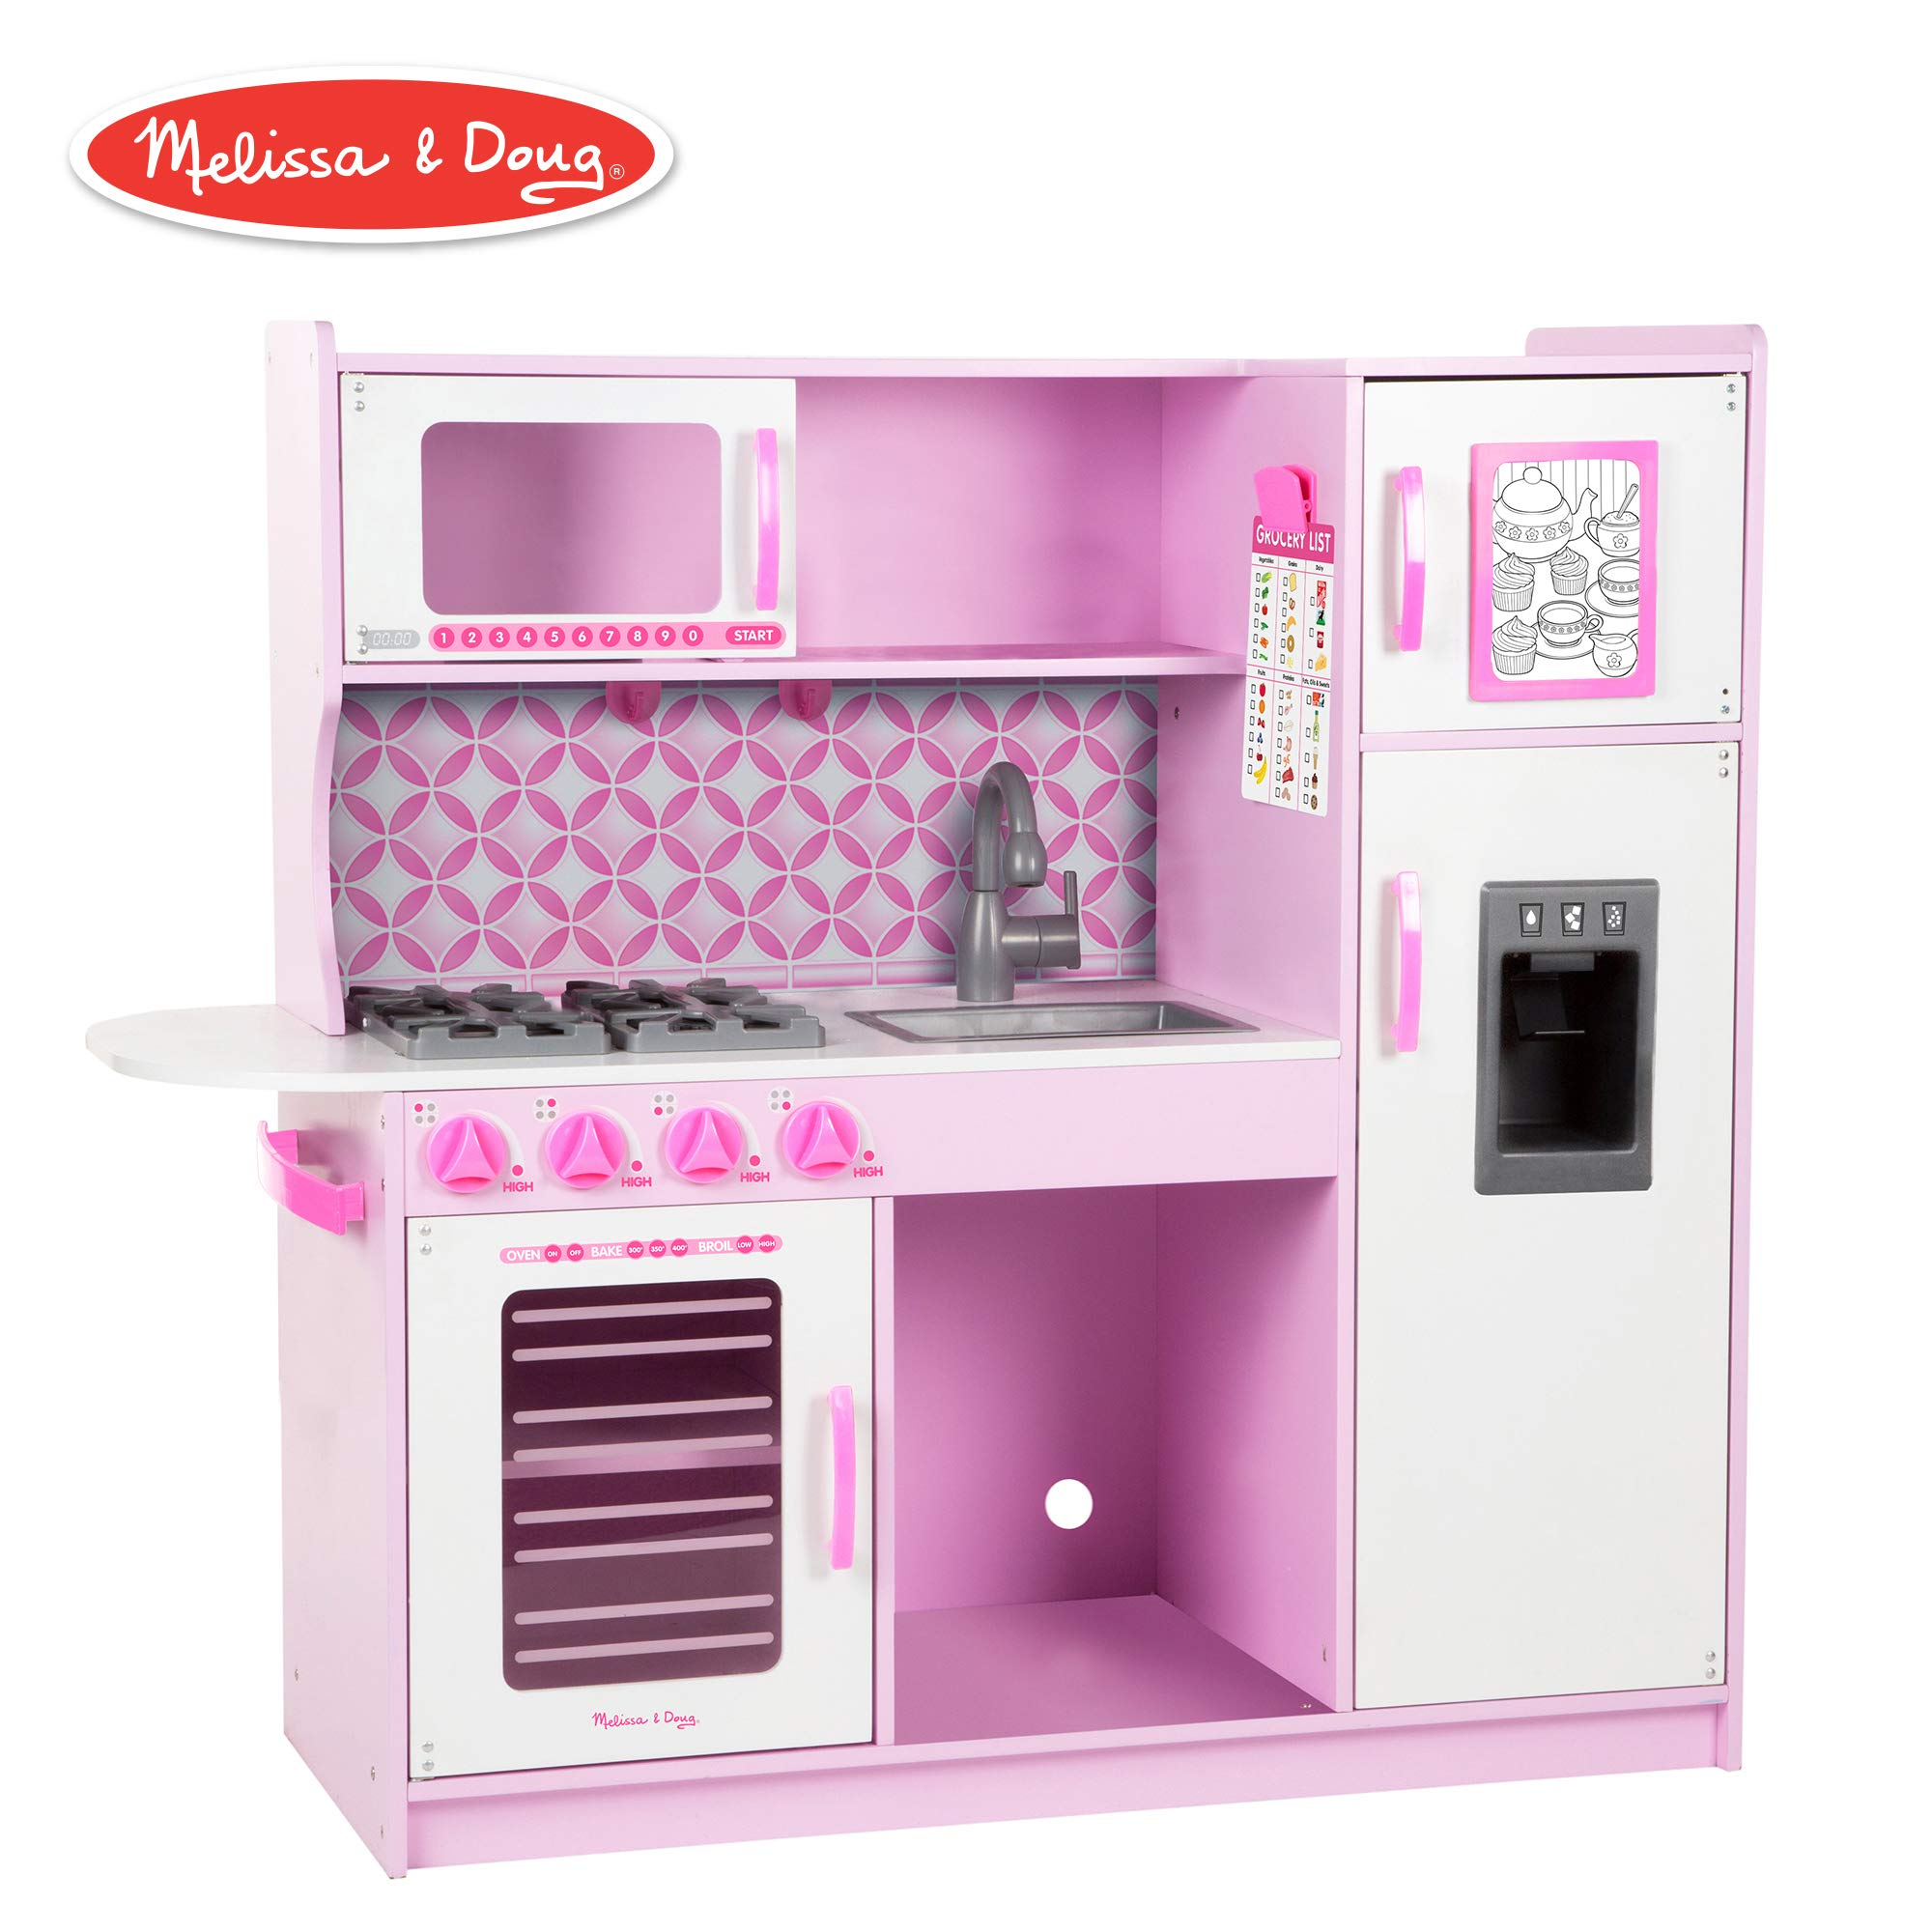 Melissa & Doug Chef's Kitchen, Pretend Play Set, Cupcake (Easy to Assemble, Durable Wooden Construction, Multiple Working Parts, 39'' H x 43.25'' W x 15.5'' L) by Melissa & Doug